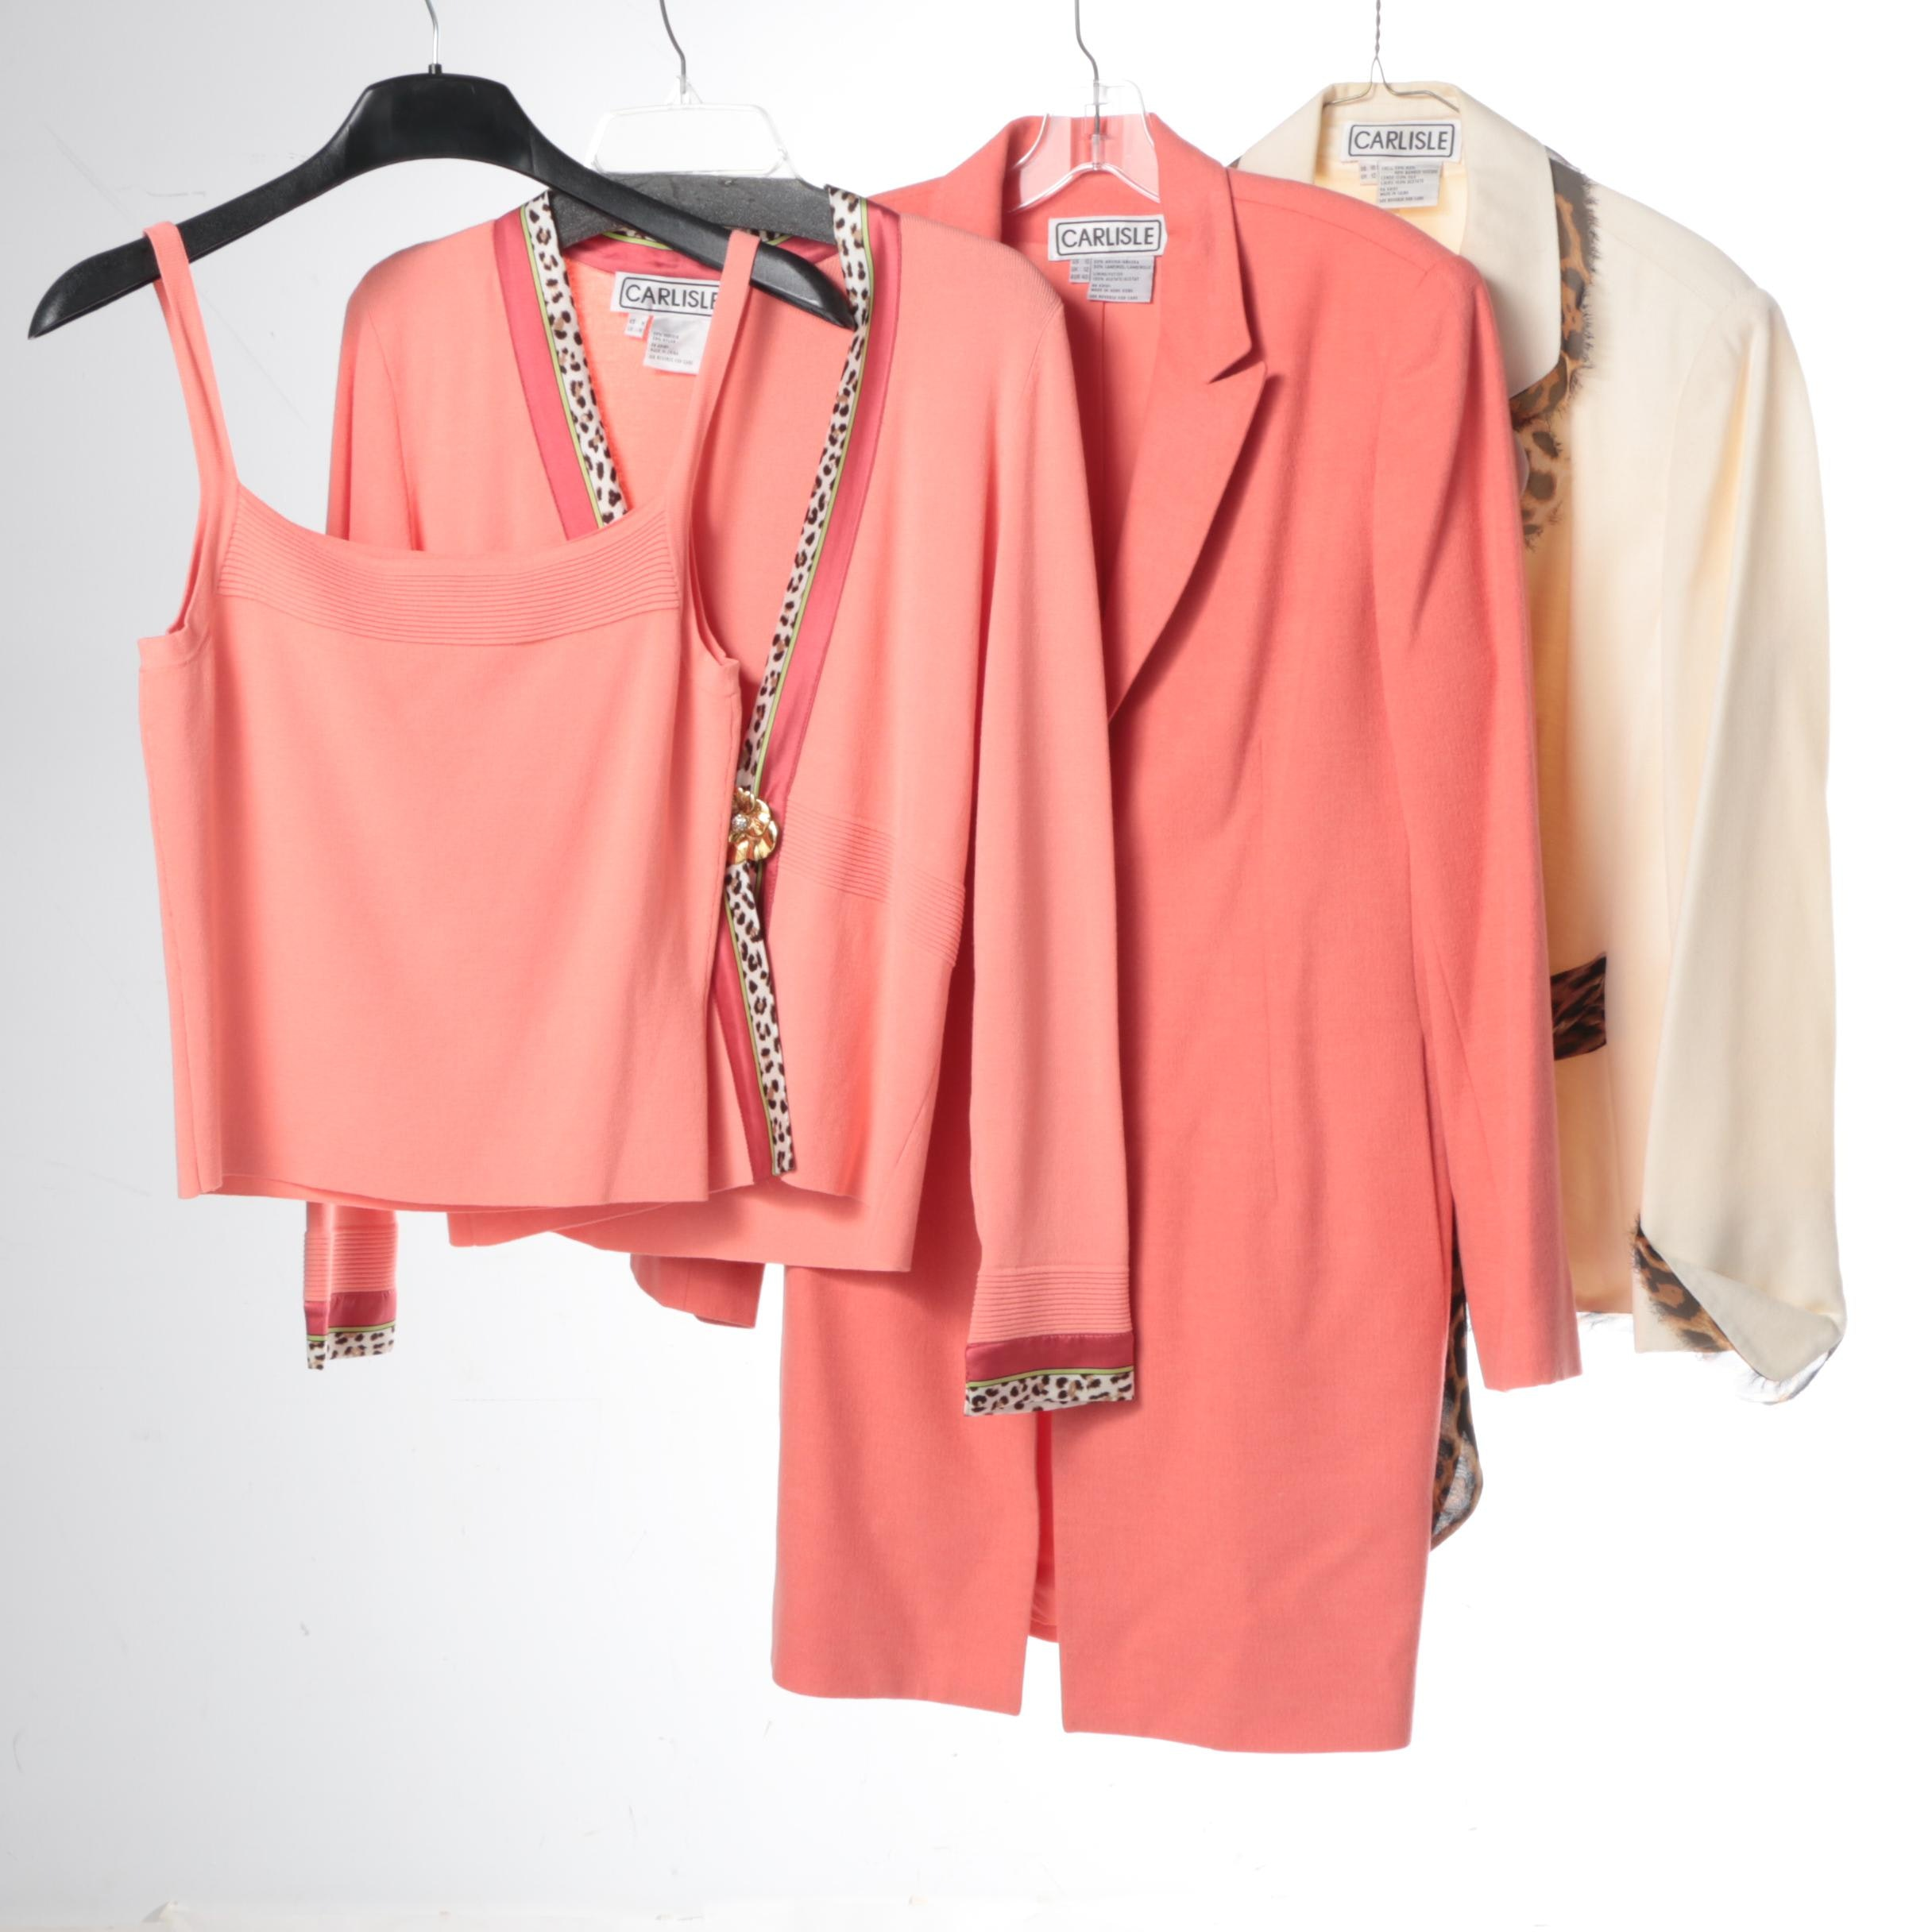 Women's Carlisle Suit Separates